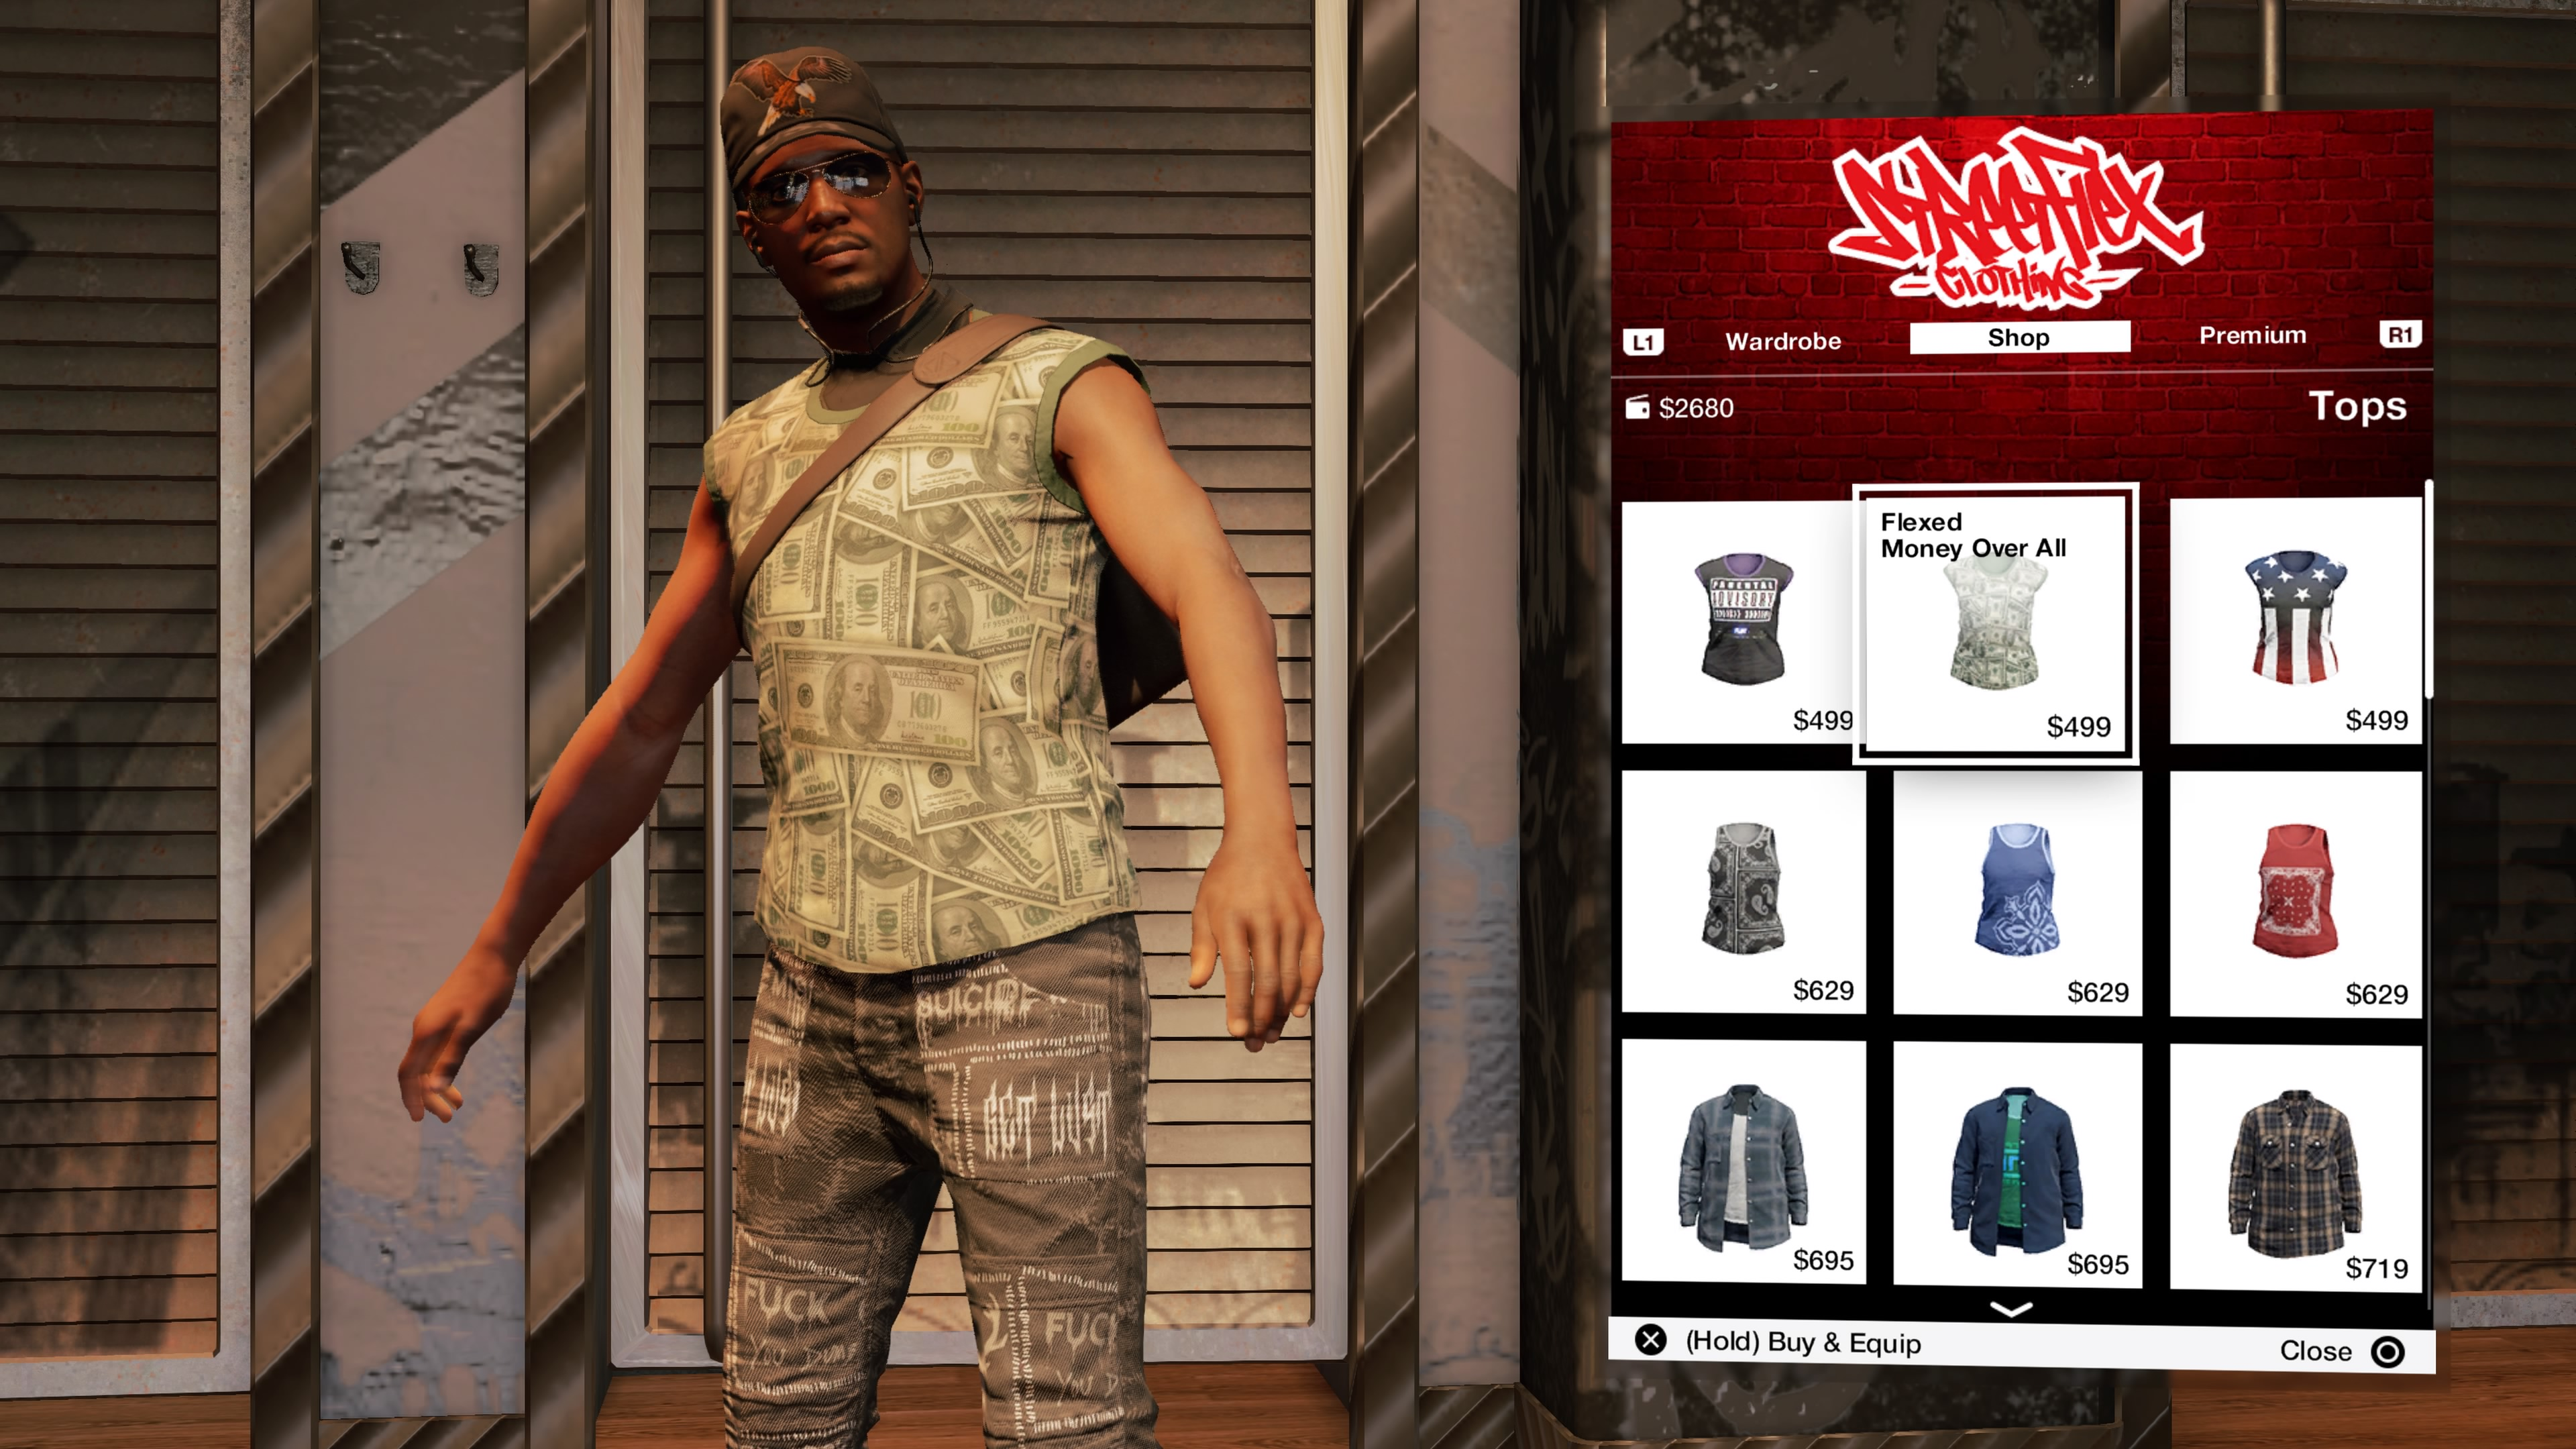 Watch Dogs  Unlockable Outfits